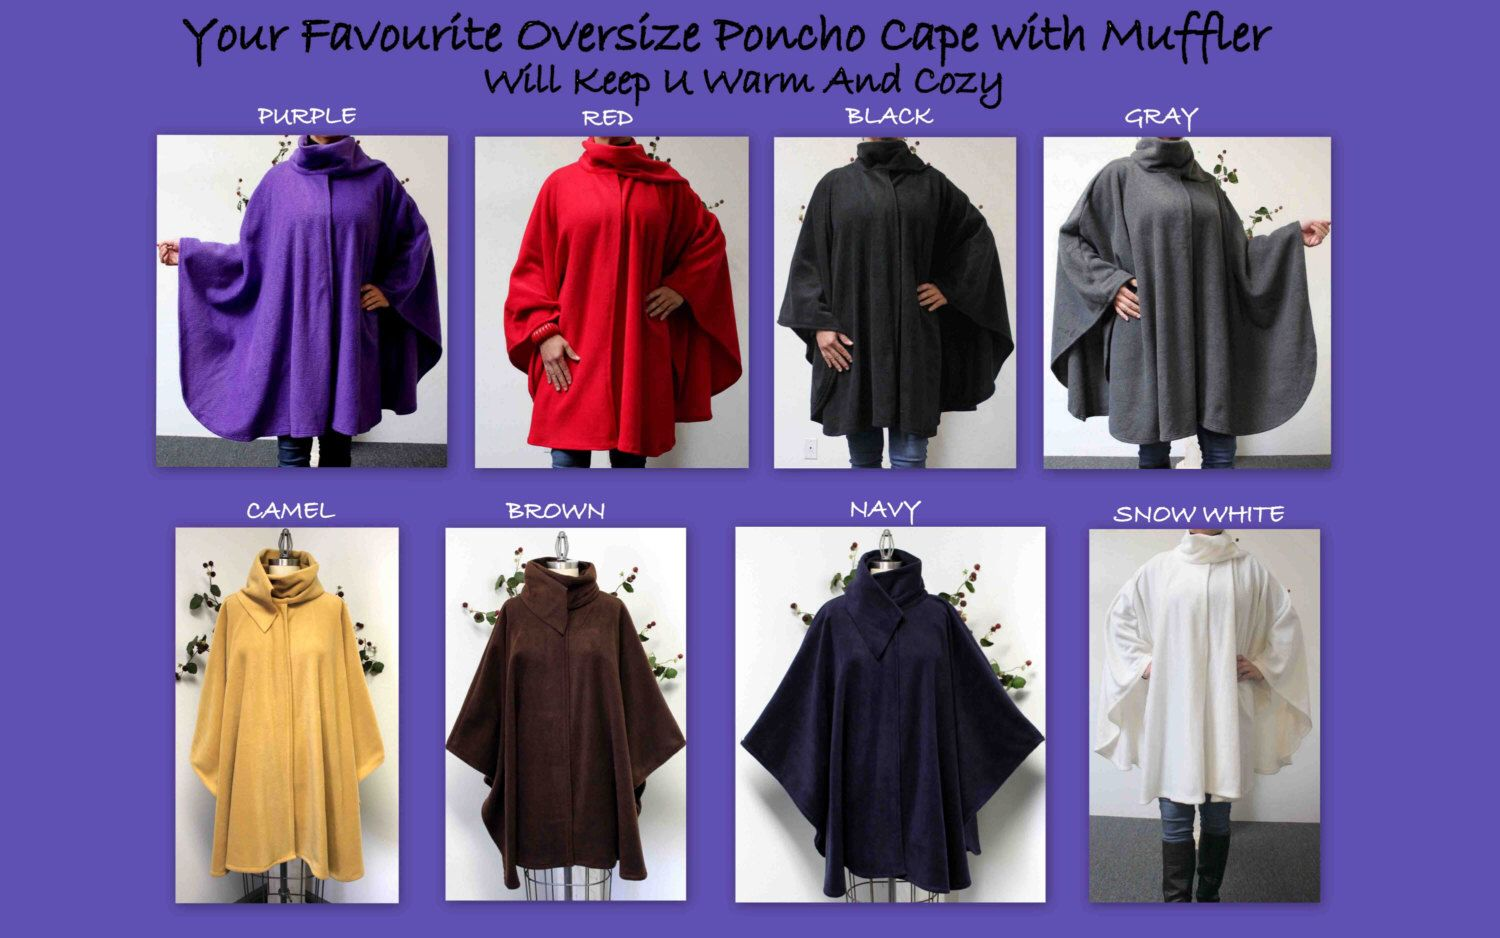 Ultimate Travelers Full Size Plus Size Poncho Cape for Everyone. Warm, Soft, Comfortable and Stylish with Muffler by ComfyPlus on Etsy https://www.etsy.com/listing/248268007/ultimate-travelers-full-size-plus-size